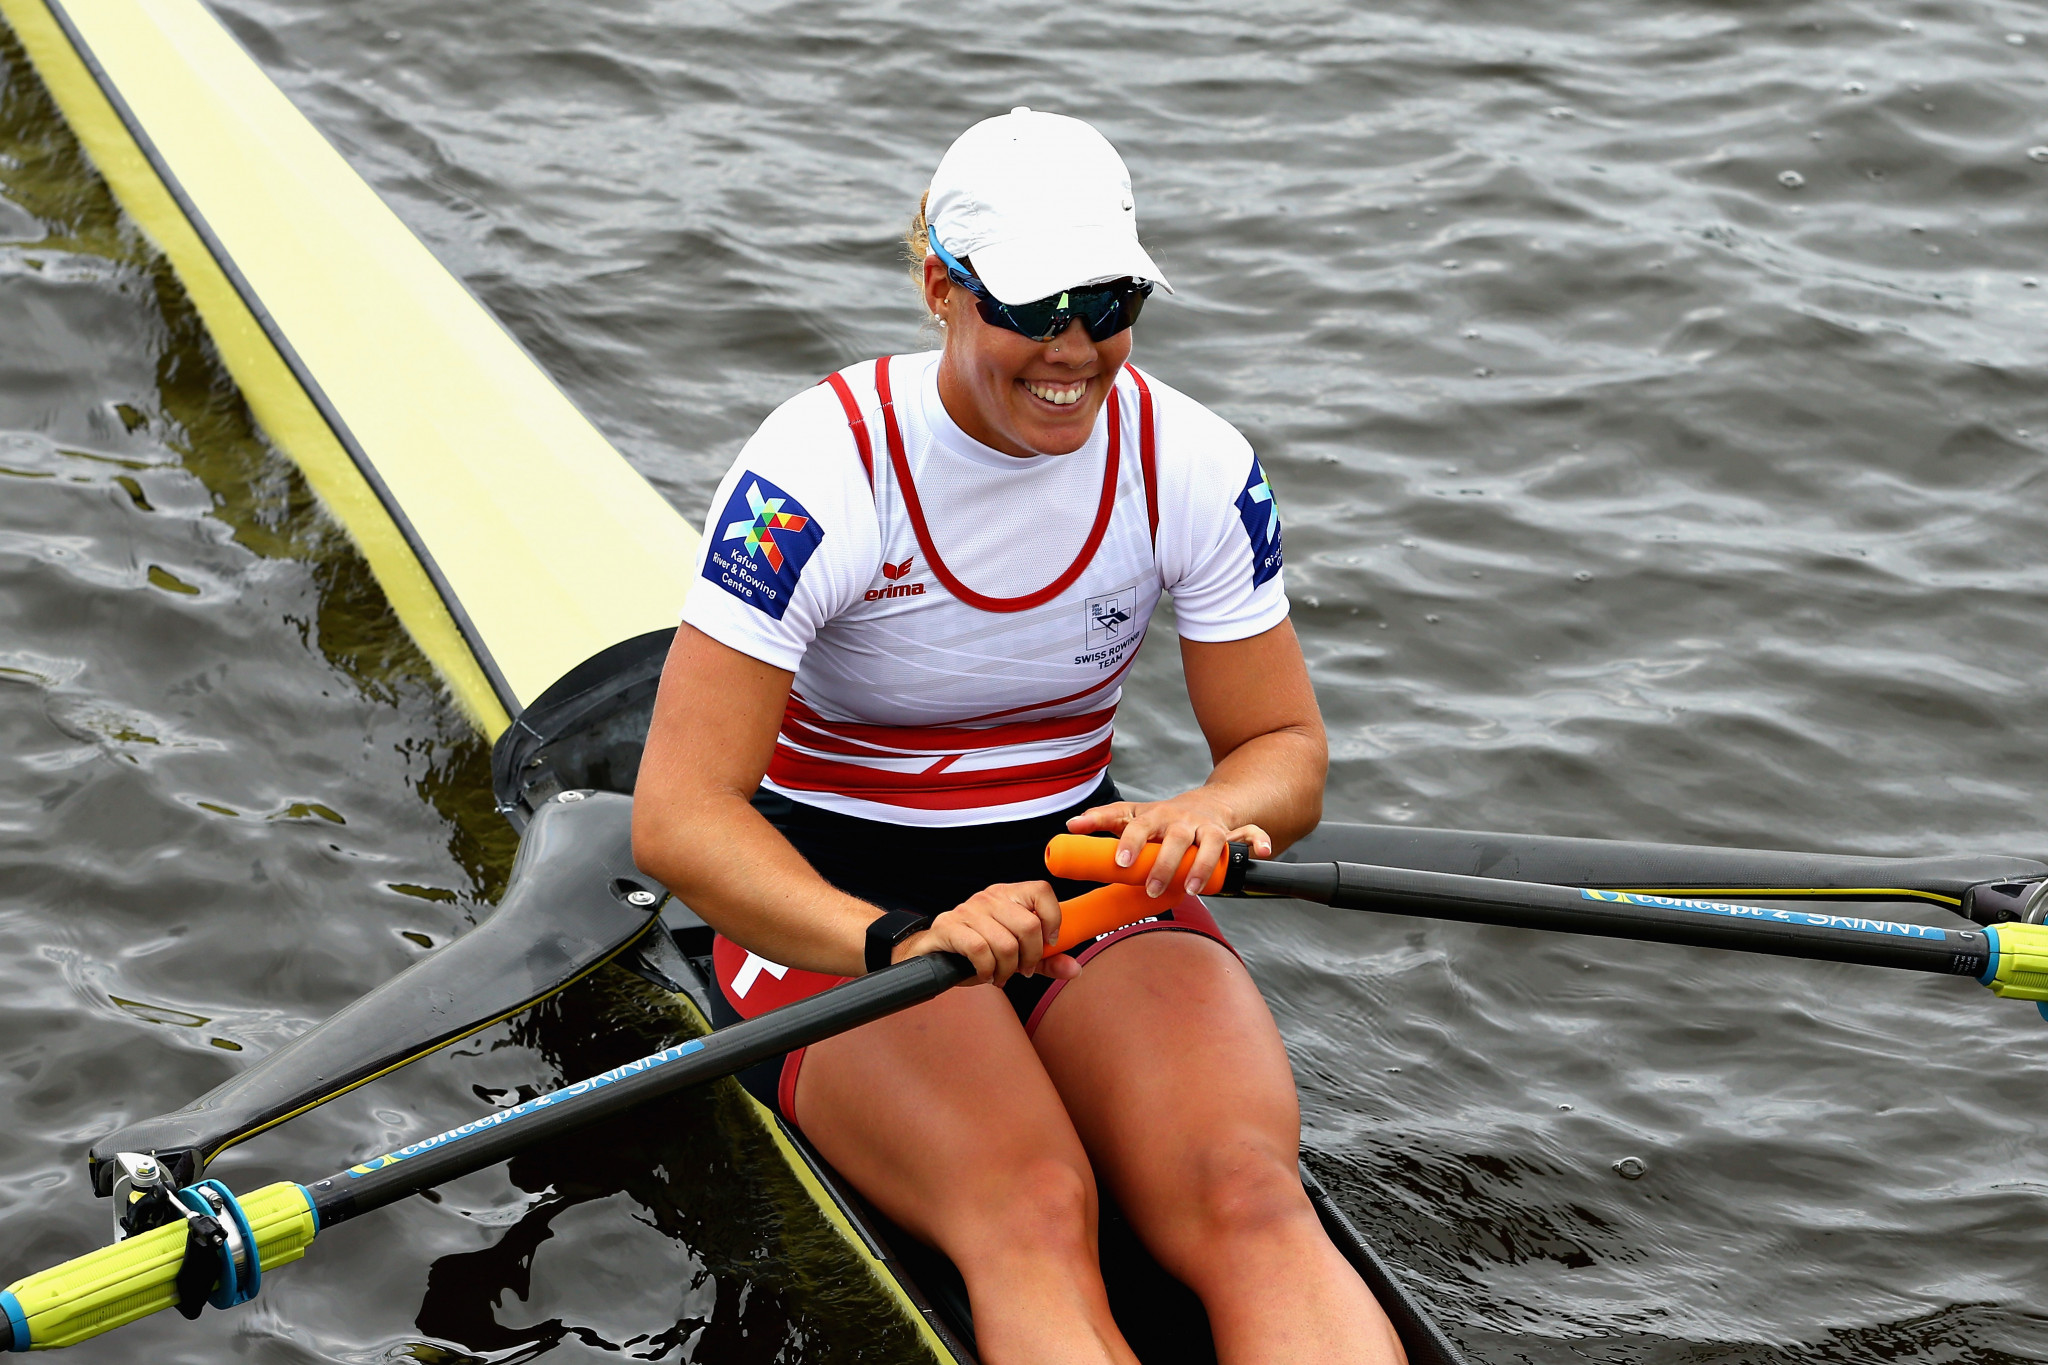 Defending champion Gmelin aiming to delight home crowd at European Rowing Championships